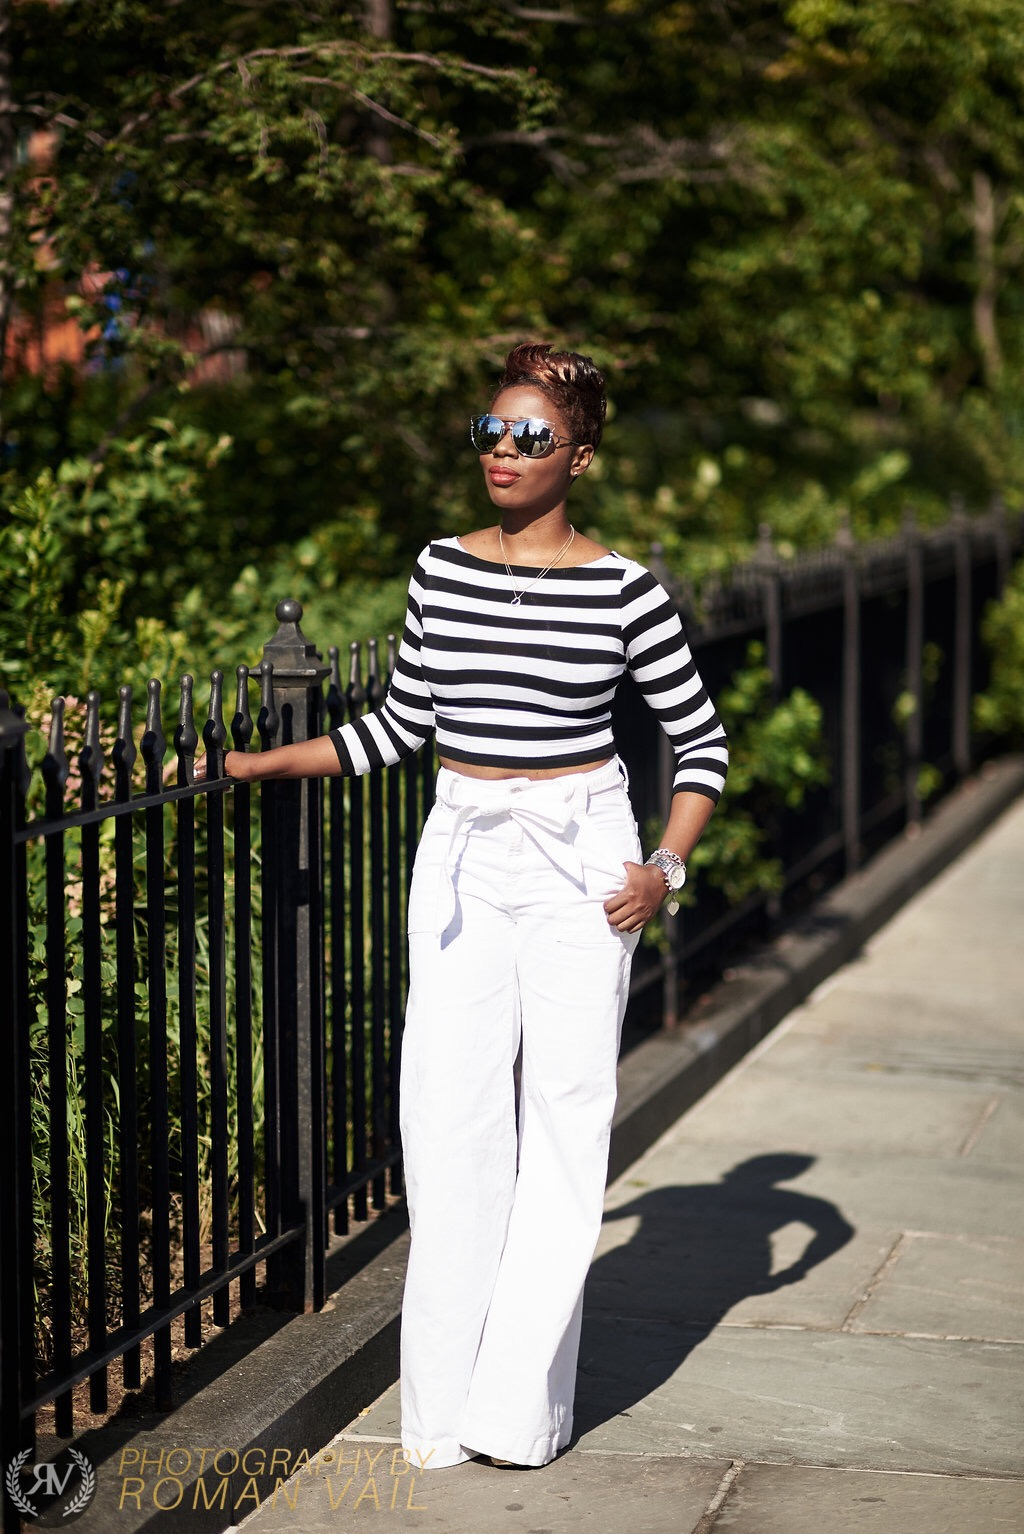 Breton Stripes Crop Top White Flare Jeans Chloe Wedges NYC Fashion Blogger